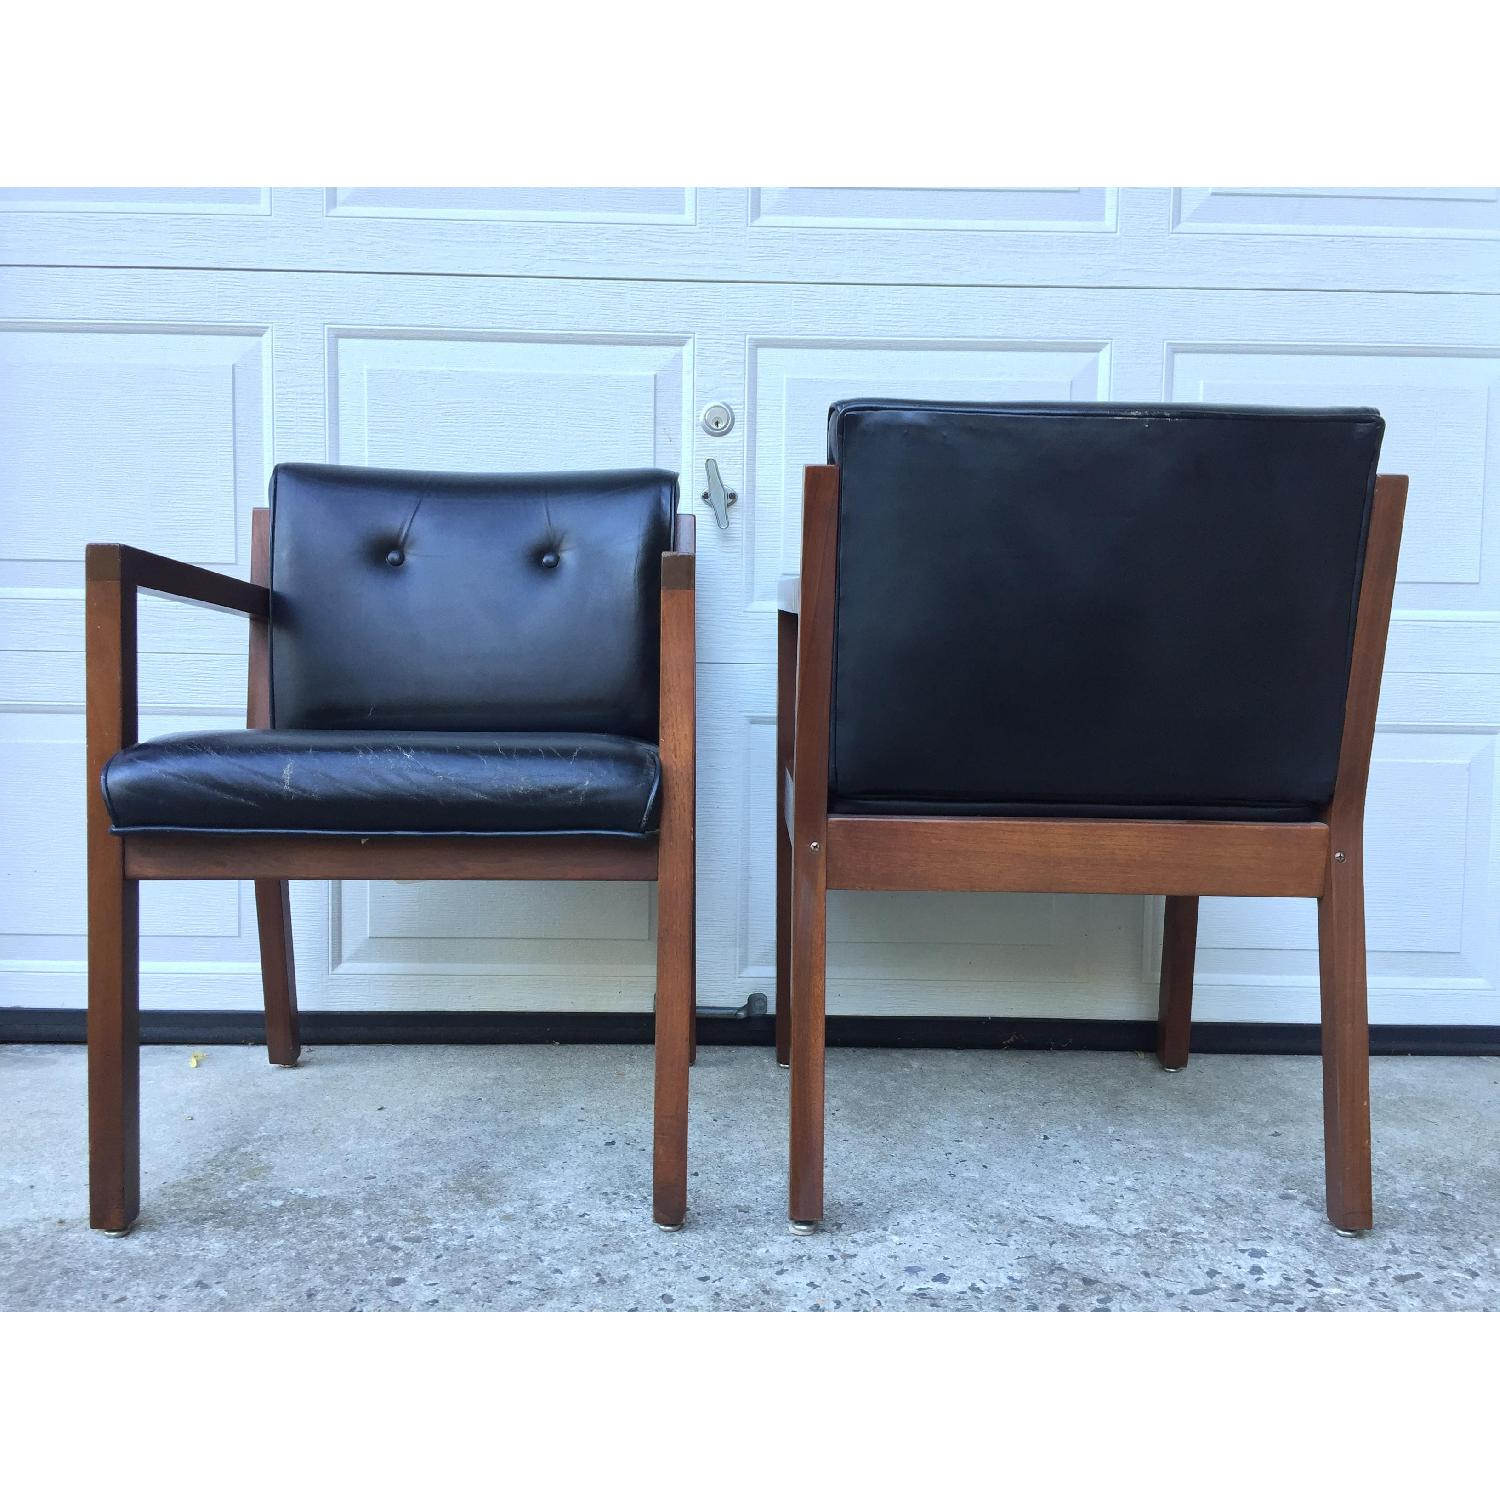 Jasper Chair Company Mid Century Modern Walnut Frame Chairs - Pair - image-3